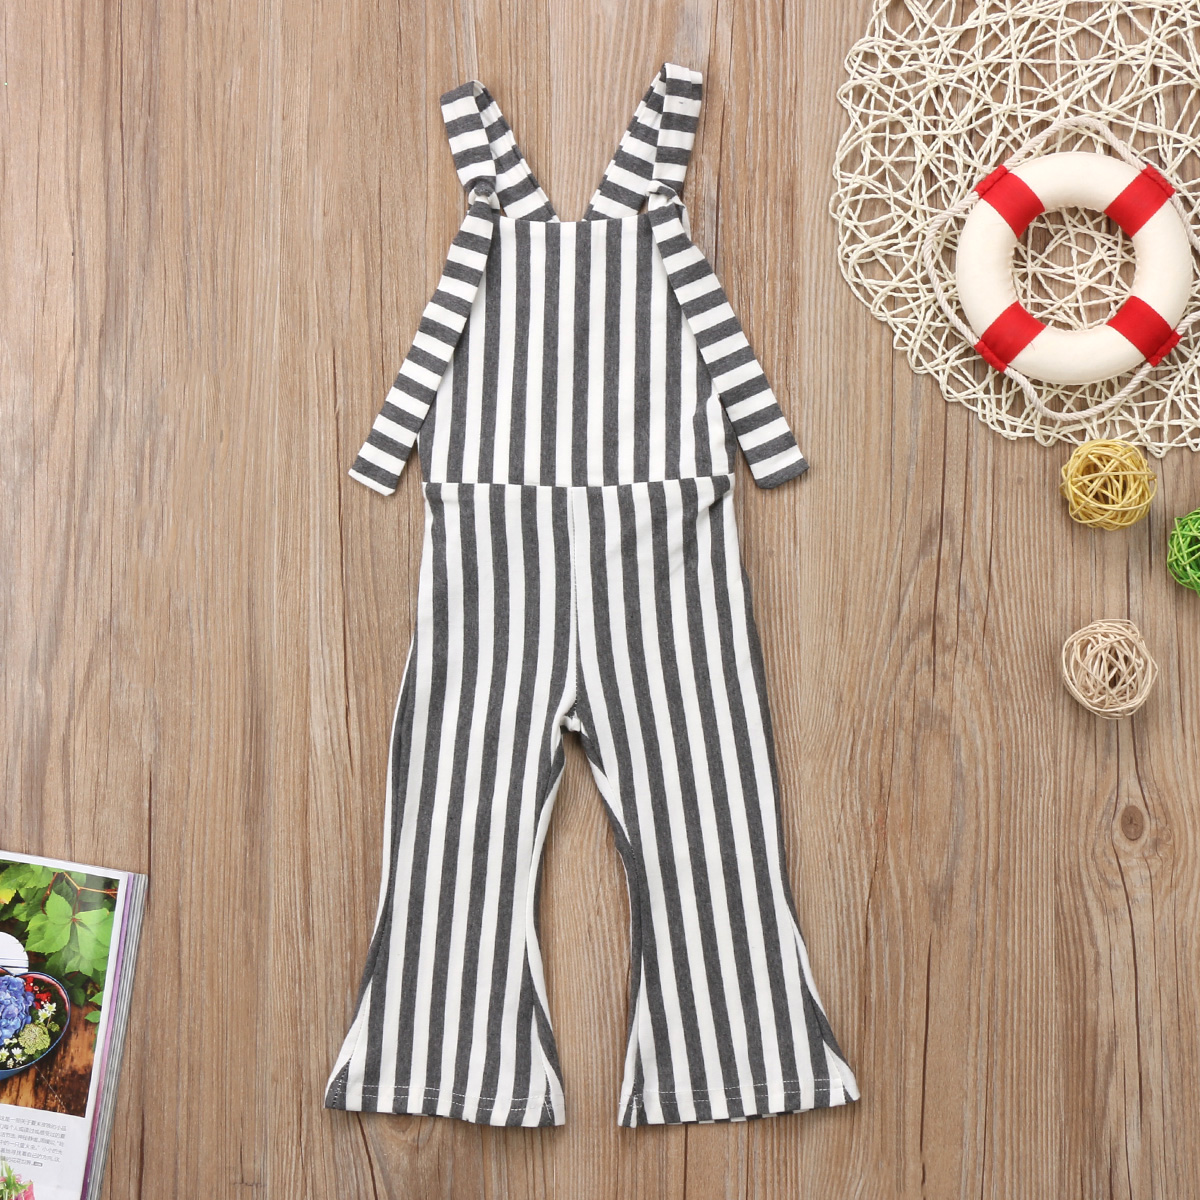 US Fashion Toddler Kids Baby Girls Striped Clothes Romper Jumpsuit Pants Outfit